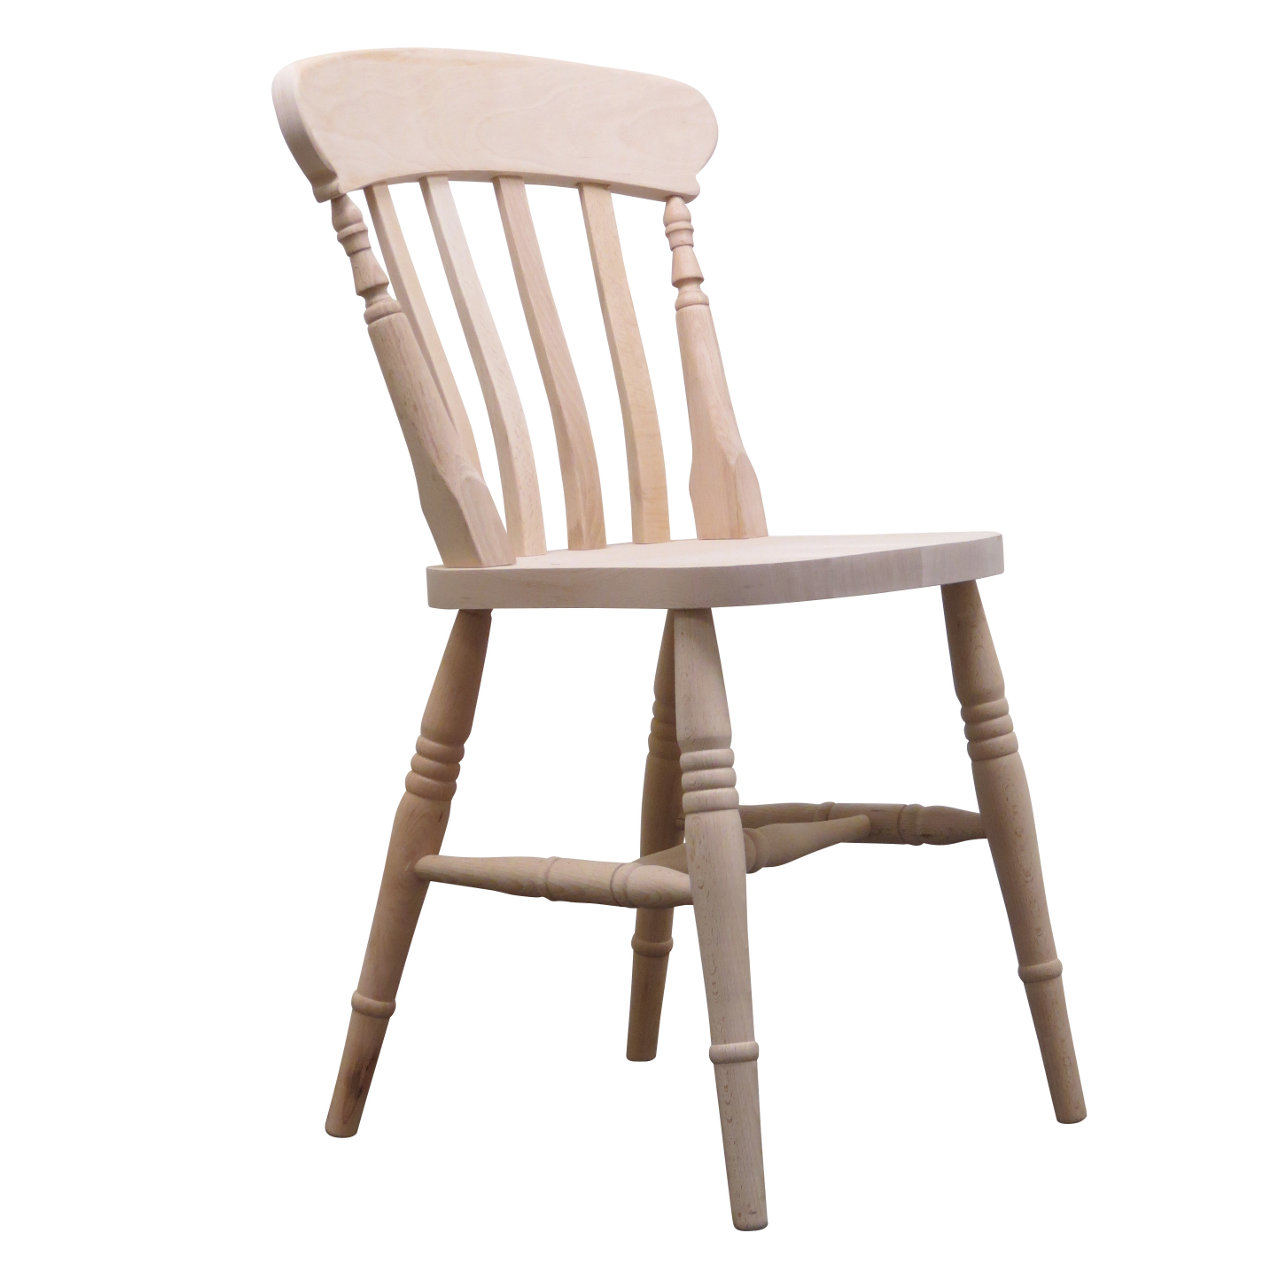 Farmhouse chair Slat back farmhouse